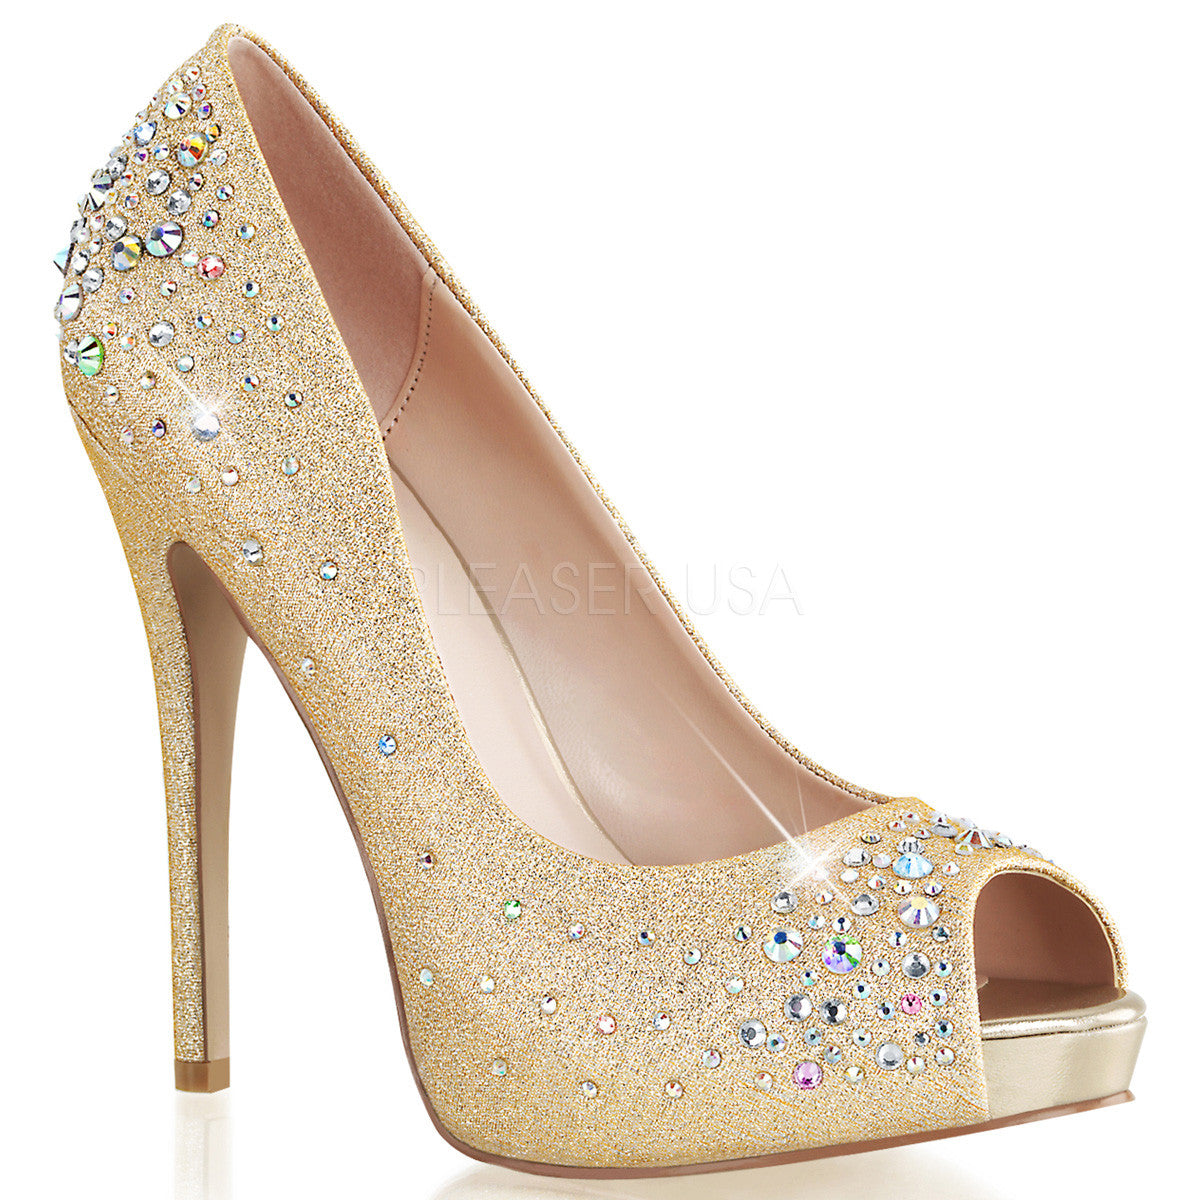 FABULICIOUS HEIRESS-22R Nude Shimmering Fabric Peep Toe Pumps - Shoecup.com